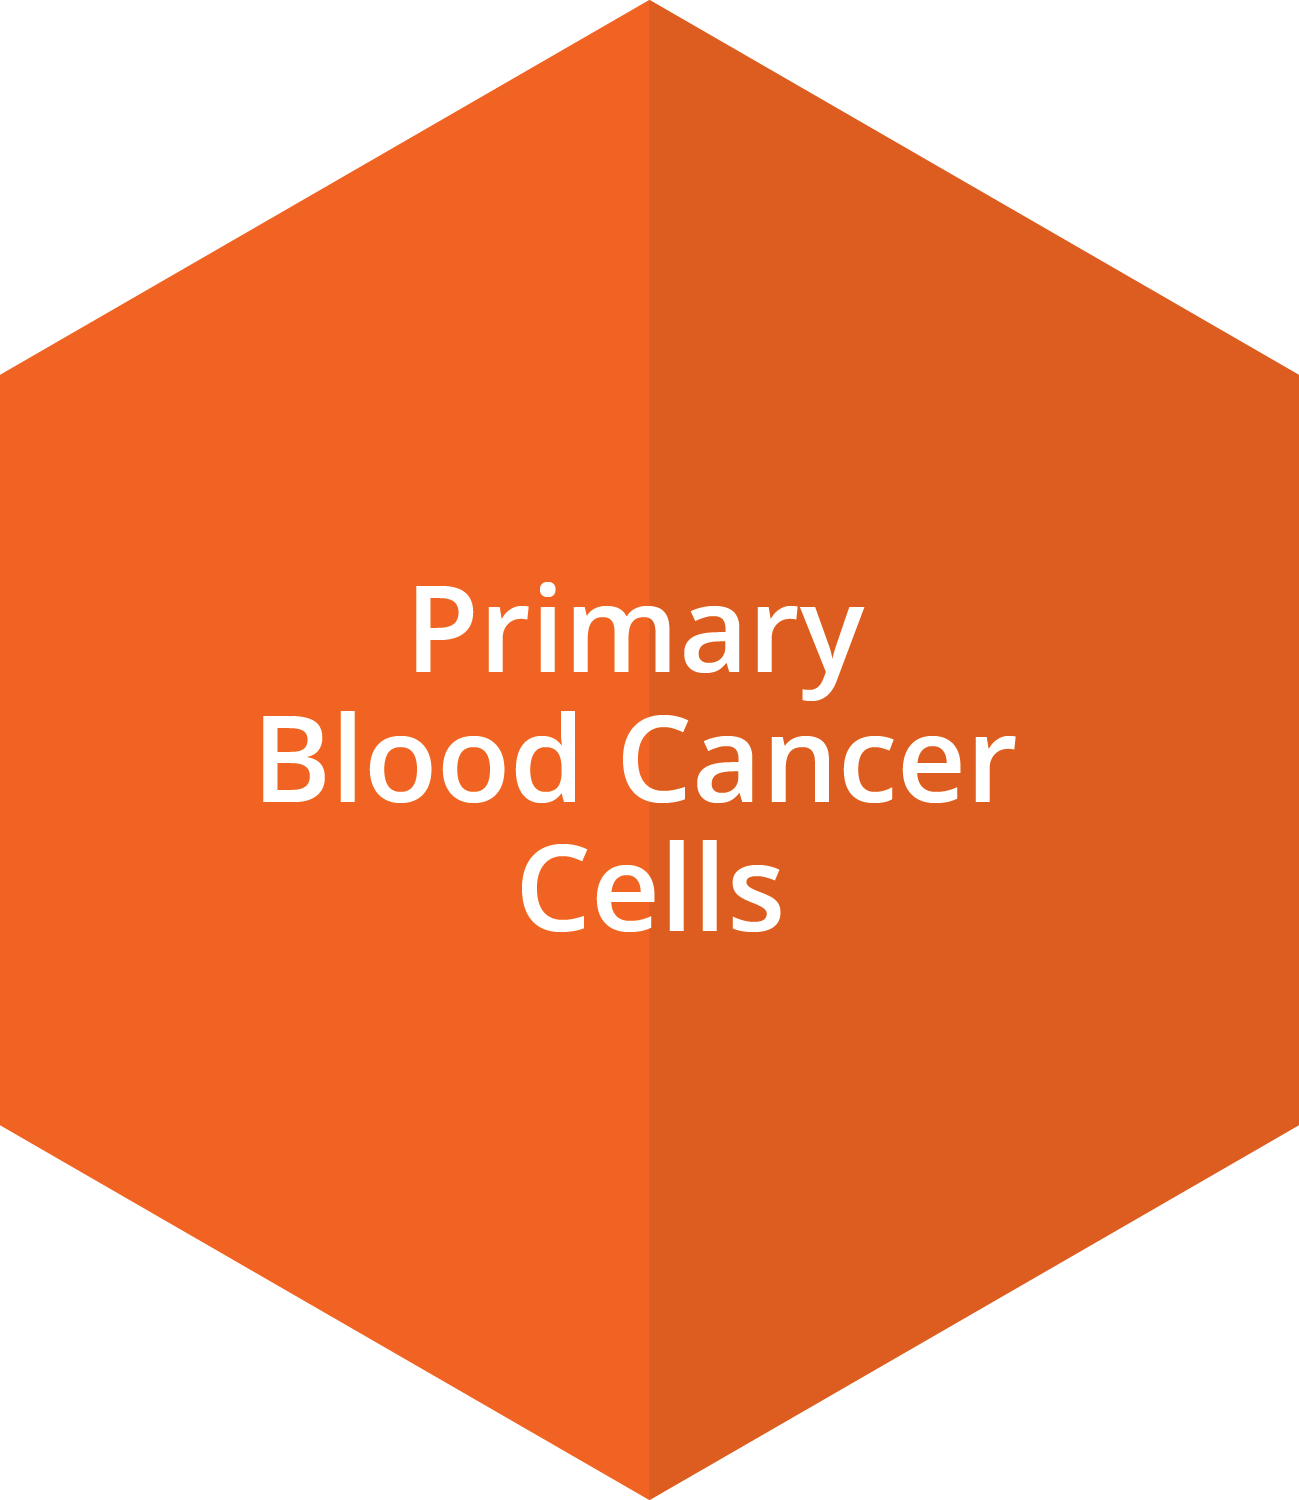 Primary Blood Cancer Cells